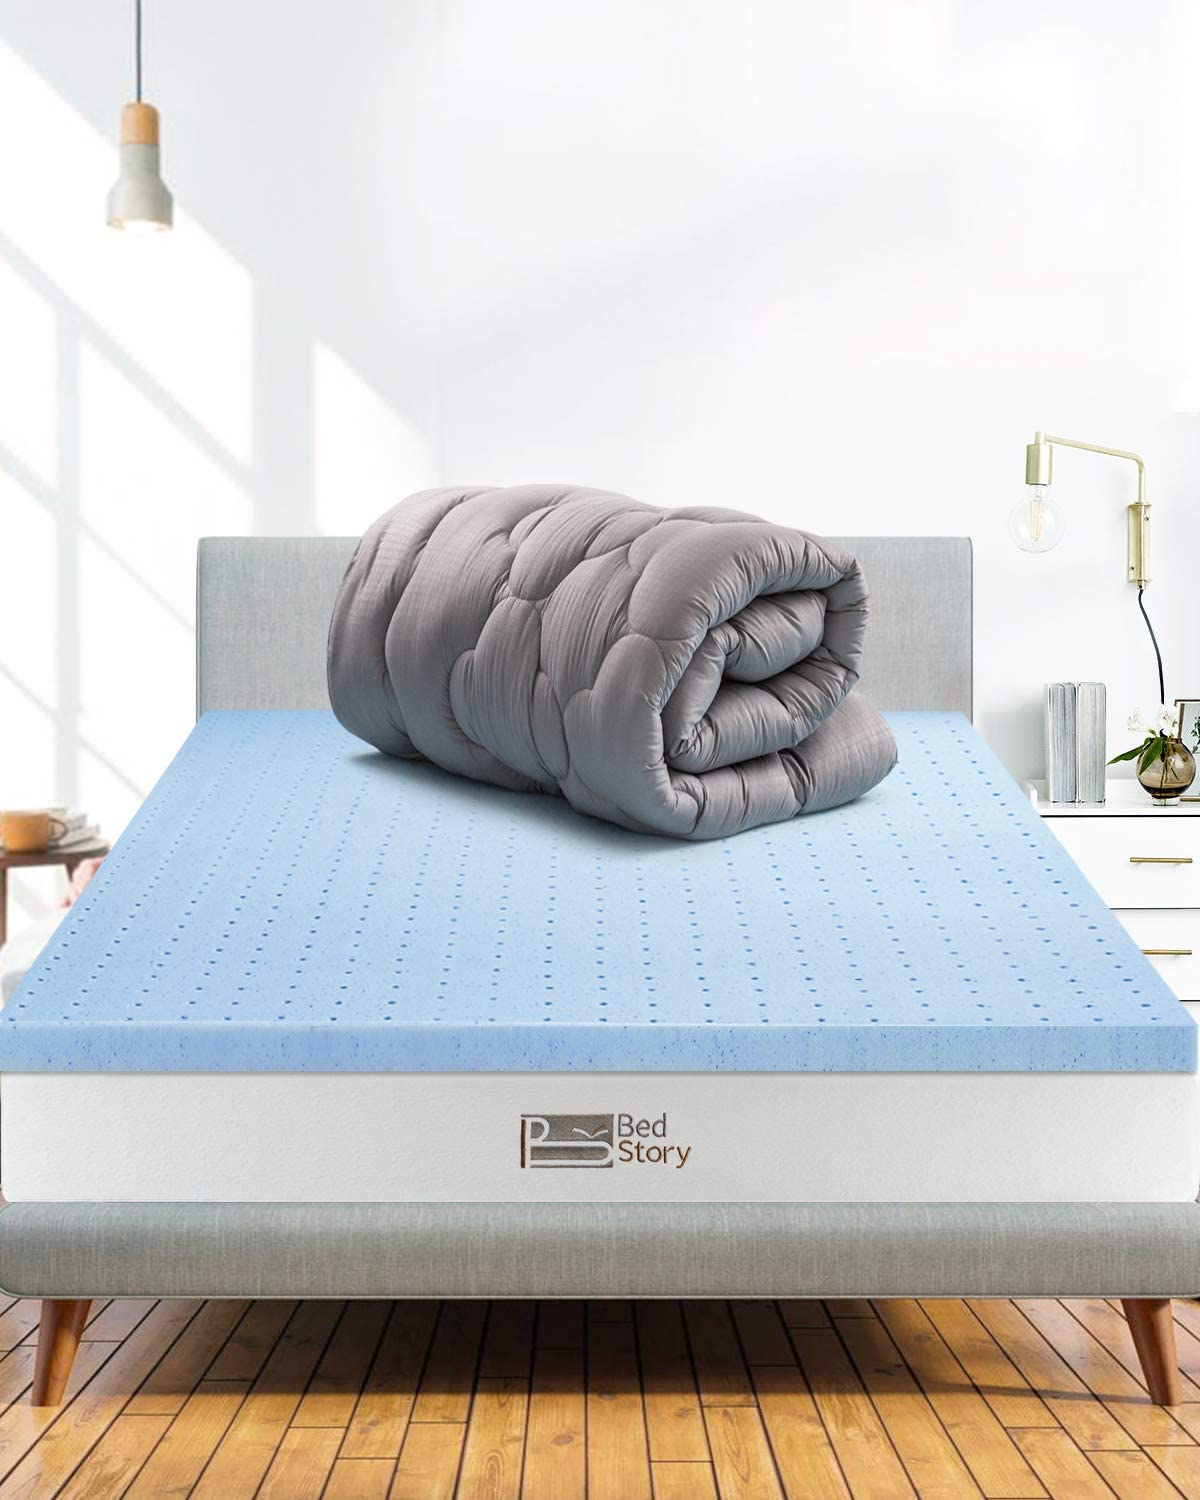 BedStory 4 Inch Mattress Topper Dual-Layer Gray 2-in-1 Combination of Comfort and Support Queen Size Pillow Top /& Gel Memory Foam Bed Toppers